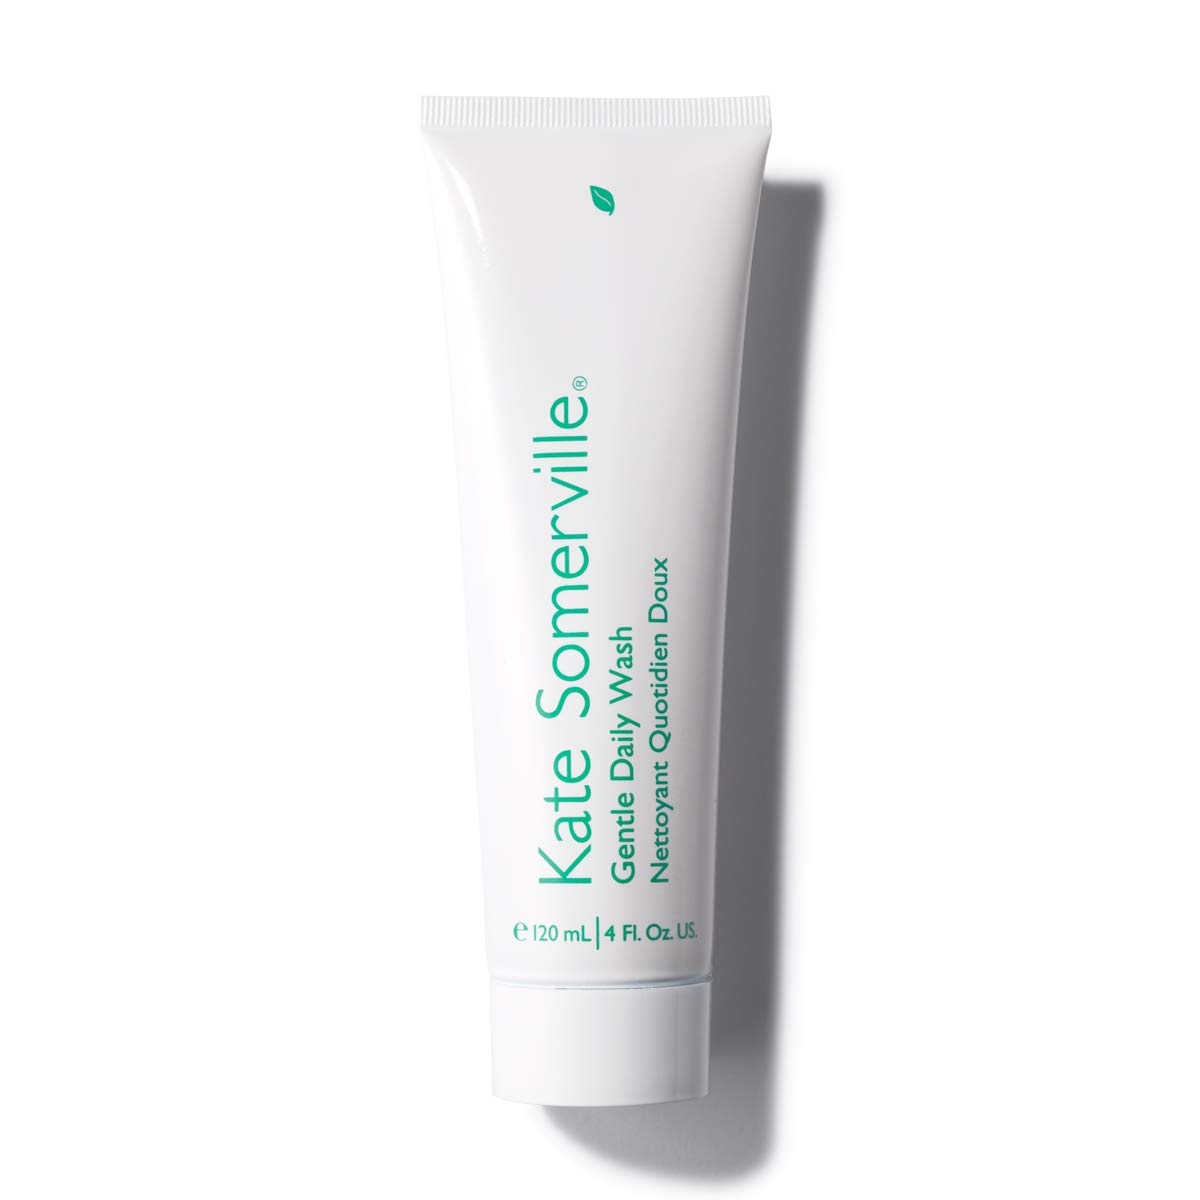 Kate Somerville Gentle Daily Wash - Daily Face Cleanser - (4 Fl. Oz.)